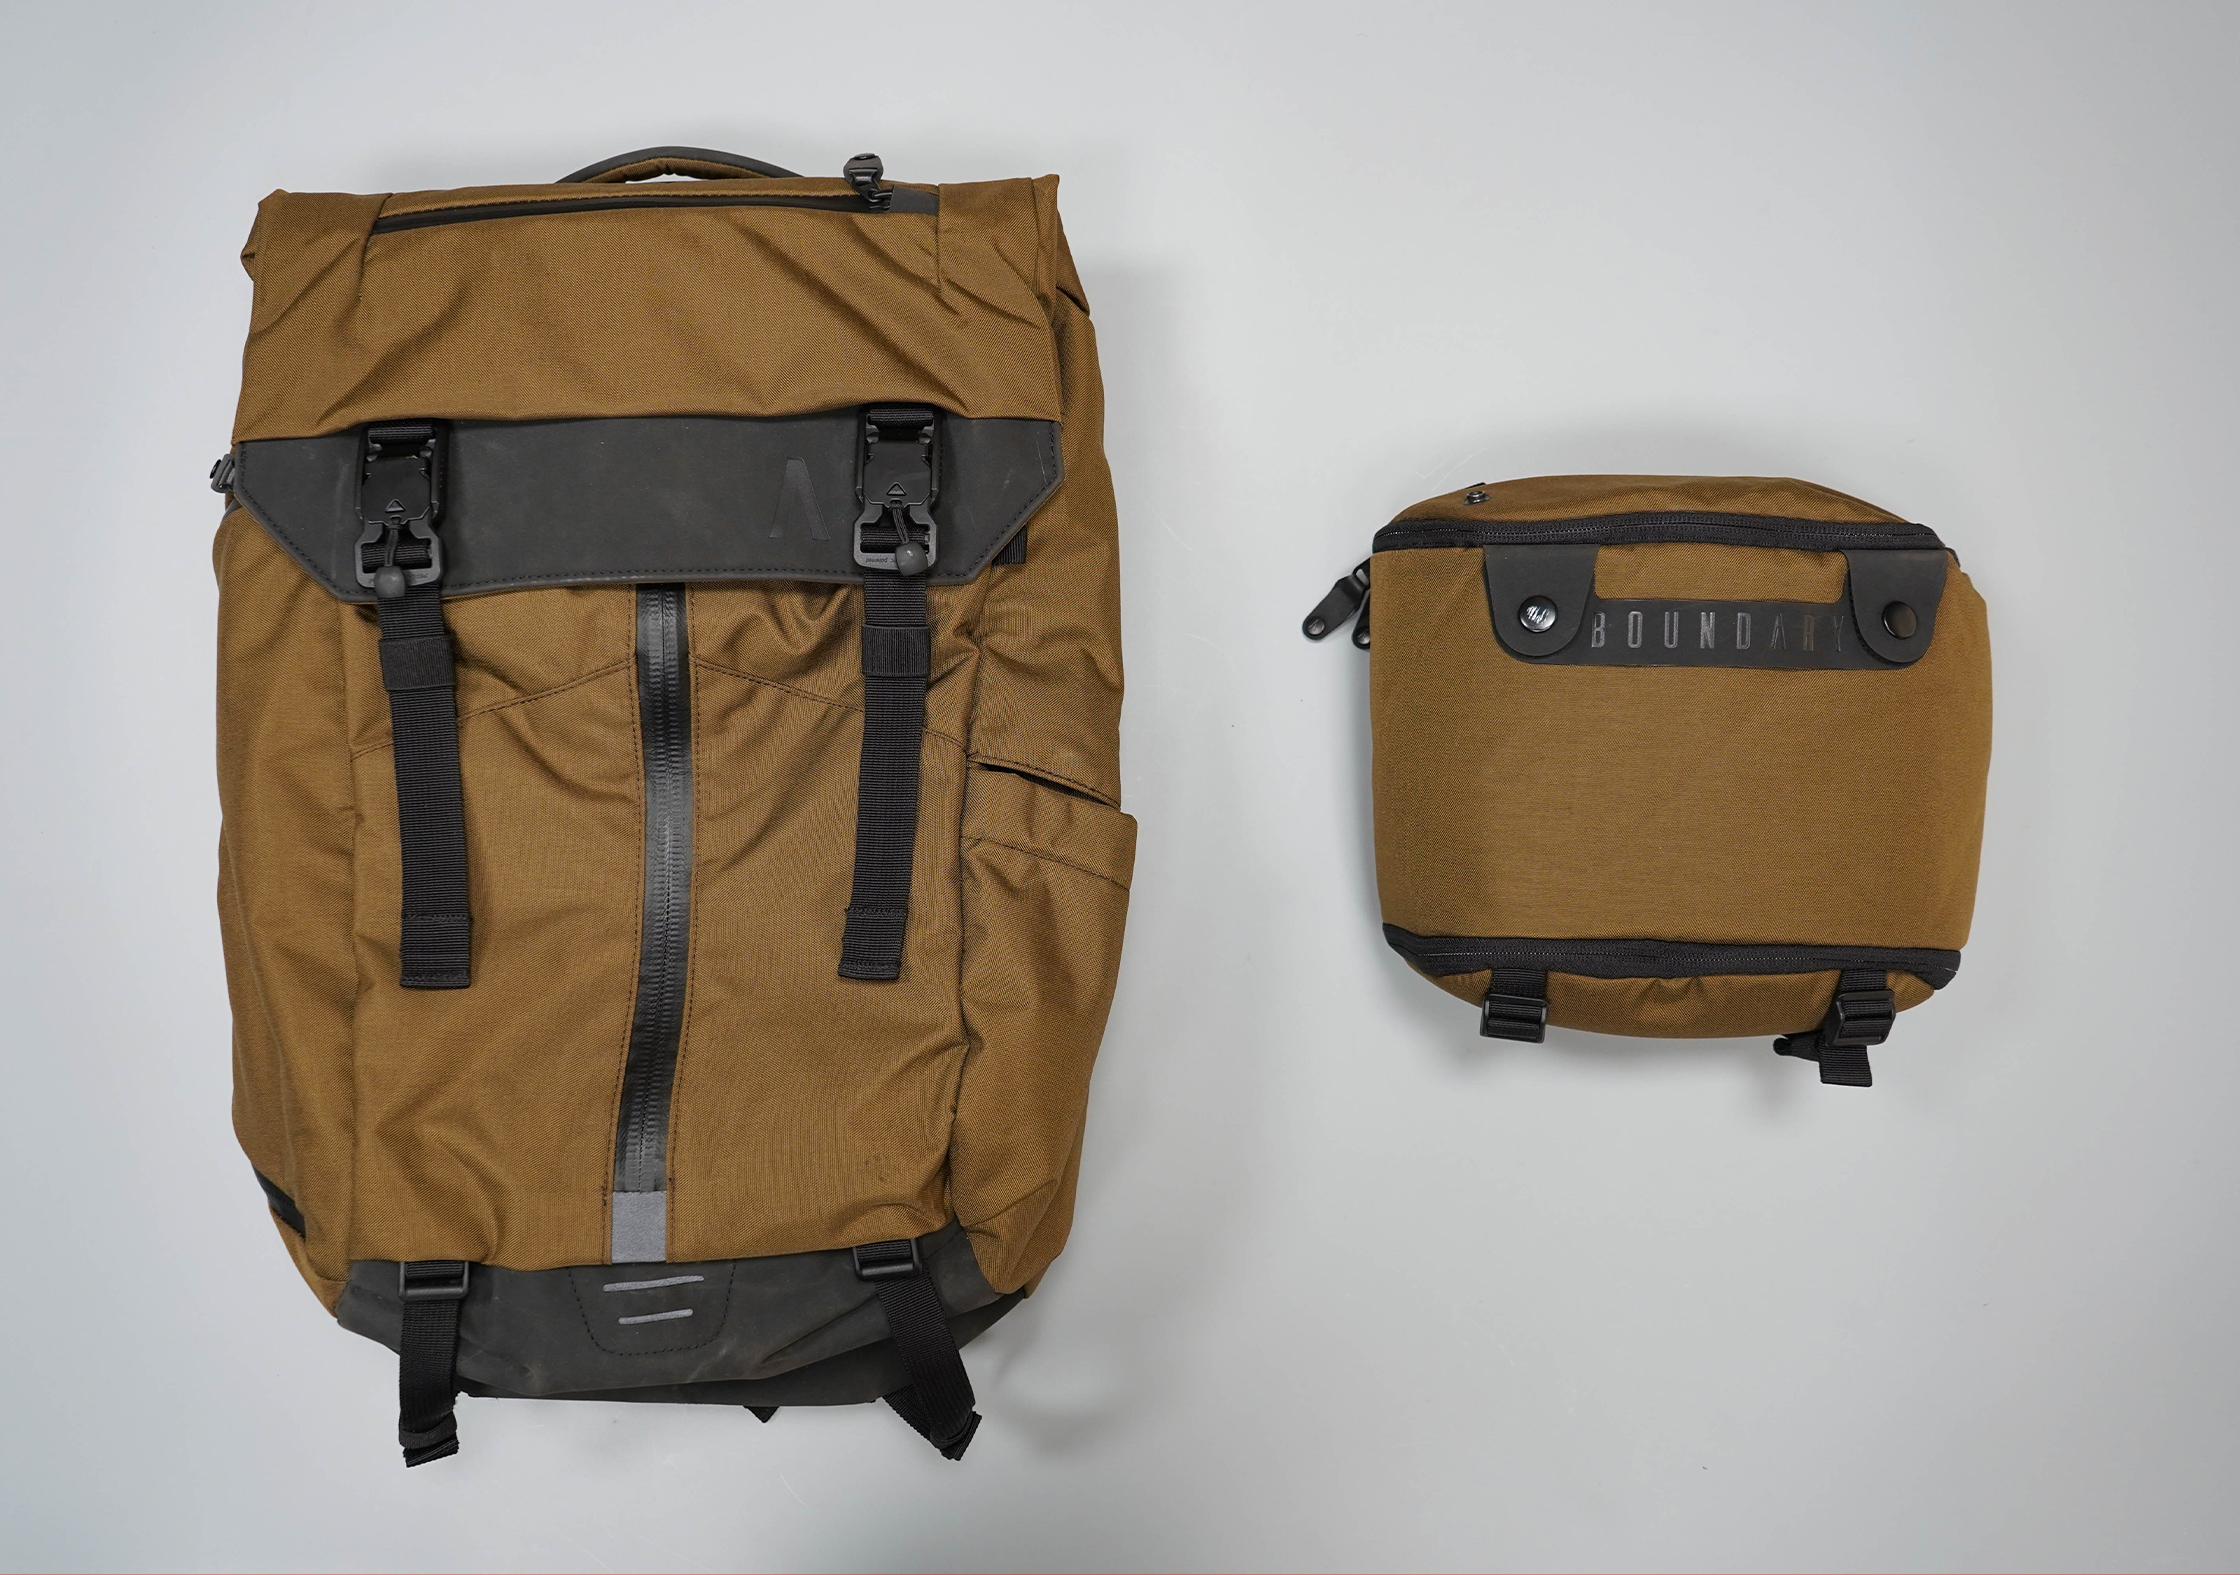 Boundary Supply Prima System Backpack With Camera Cube